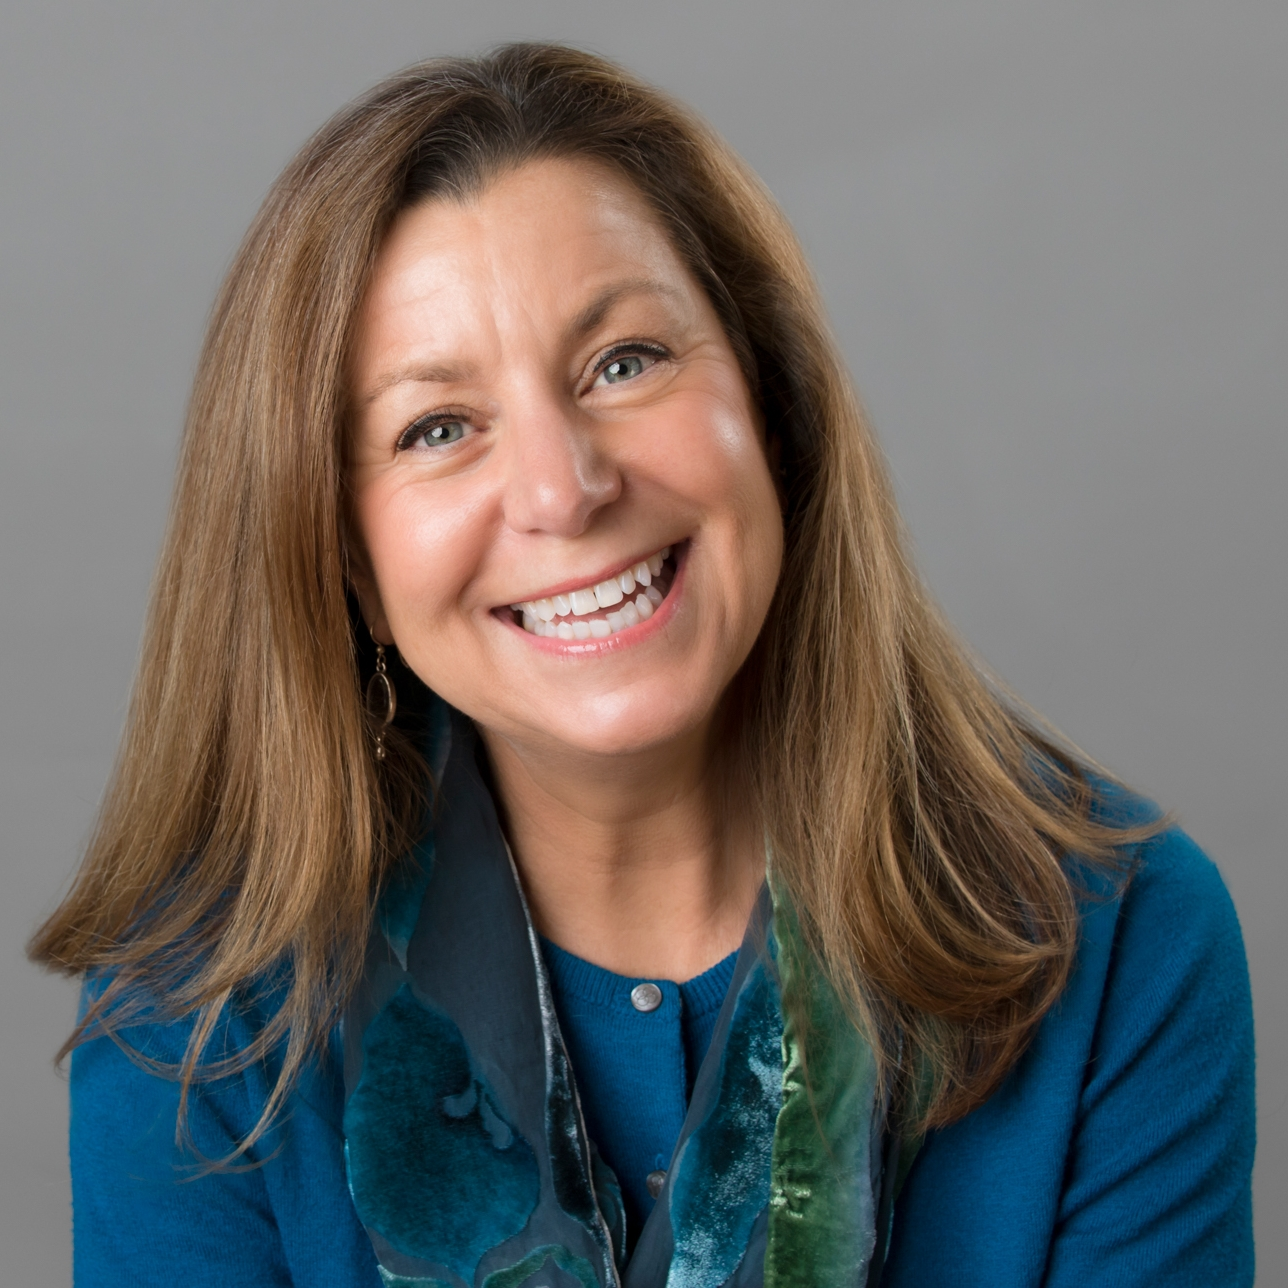 Lori Giuttari - Lori has directed Fortune 500 Communication teams, producing successful global events. Events included Executive Leadership Forums and Global Analyst events; all focused on the goal of bringing together top internal and external experts to showcase case studies in support of the corporate brand. She has also managed statewide political campaigns, and regularly coaches CEOs. Lori is a certified Master Coach and Facilitator with demonstrated success in the areas of strategic planning, change management, manager accountability and communications.